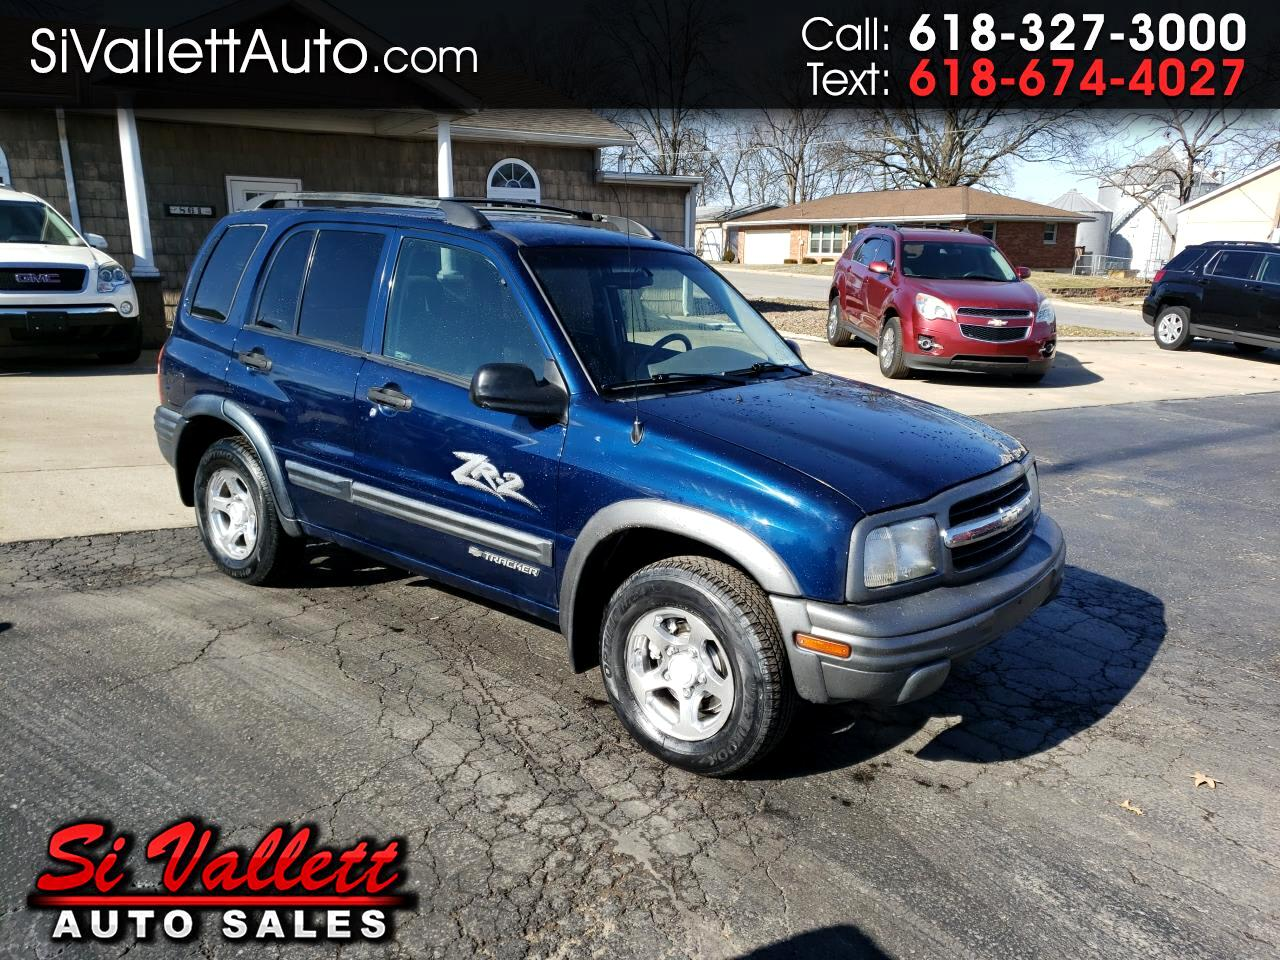 2003 Chevrolet Tracker 4dr Hardtop 4WD ZR2